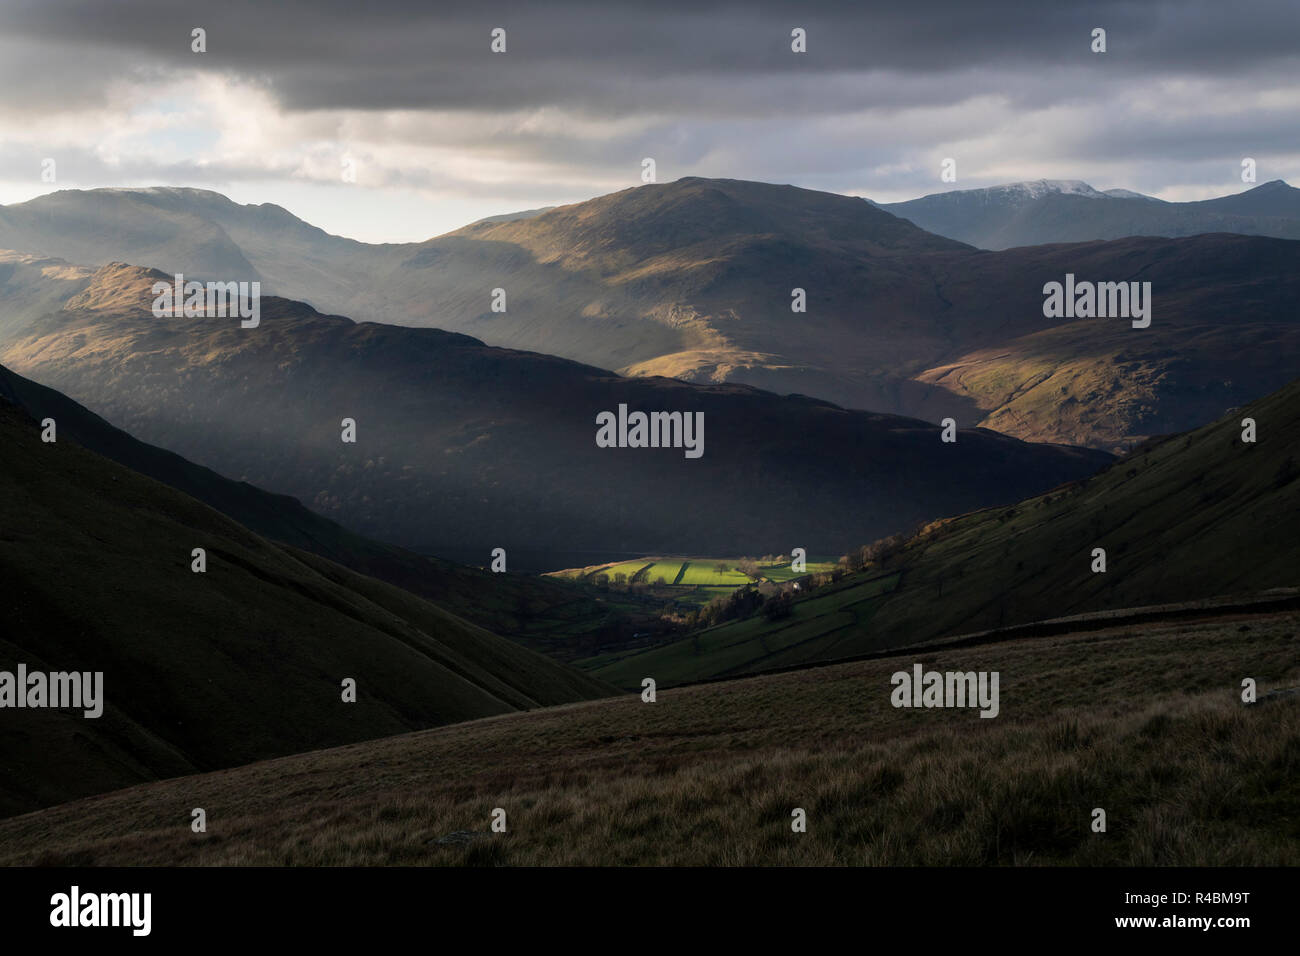 Helvellyn, St Sunday Crag and Fairfield from Hayeswater Gill above Hartsop, Lake District, Cumbria, UK - Stock Image